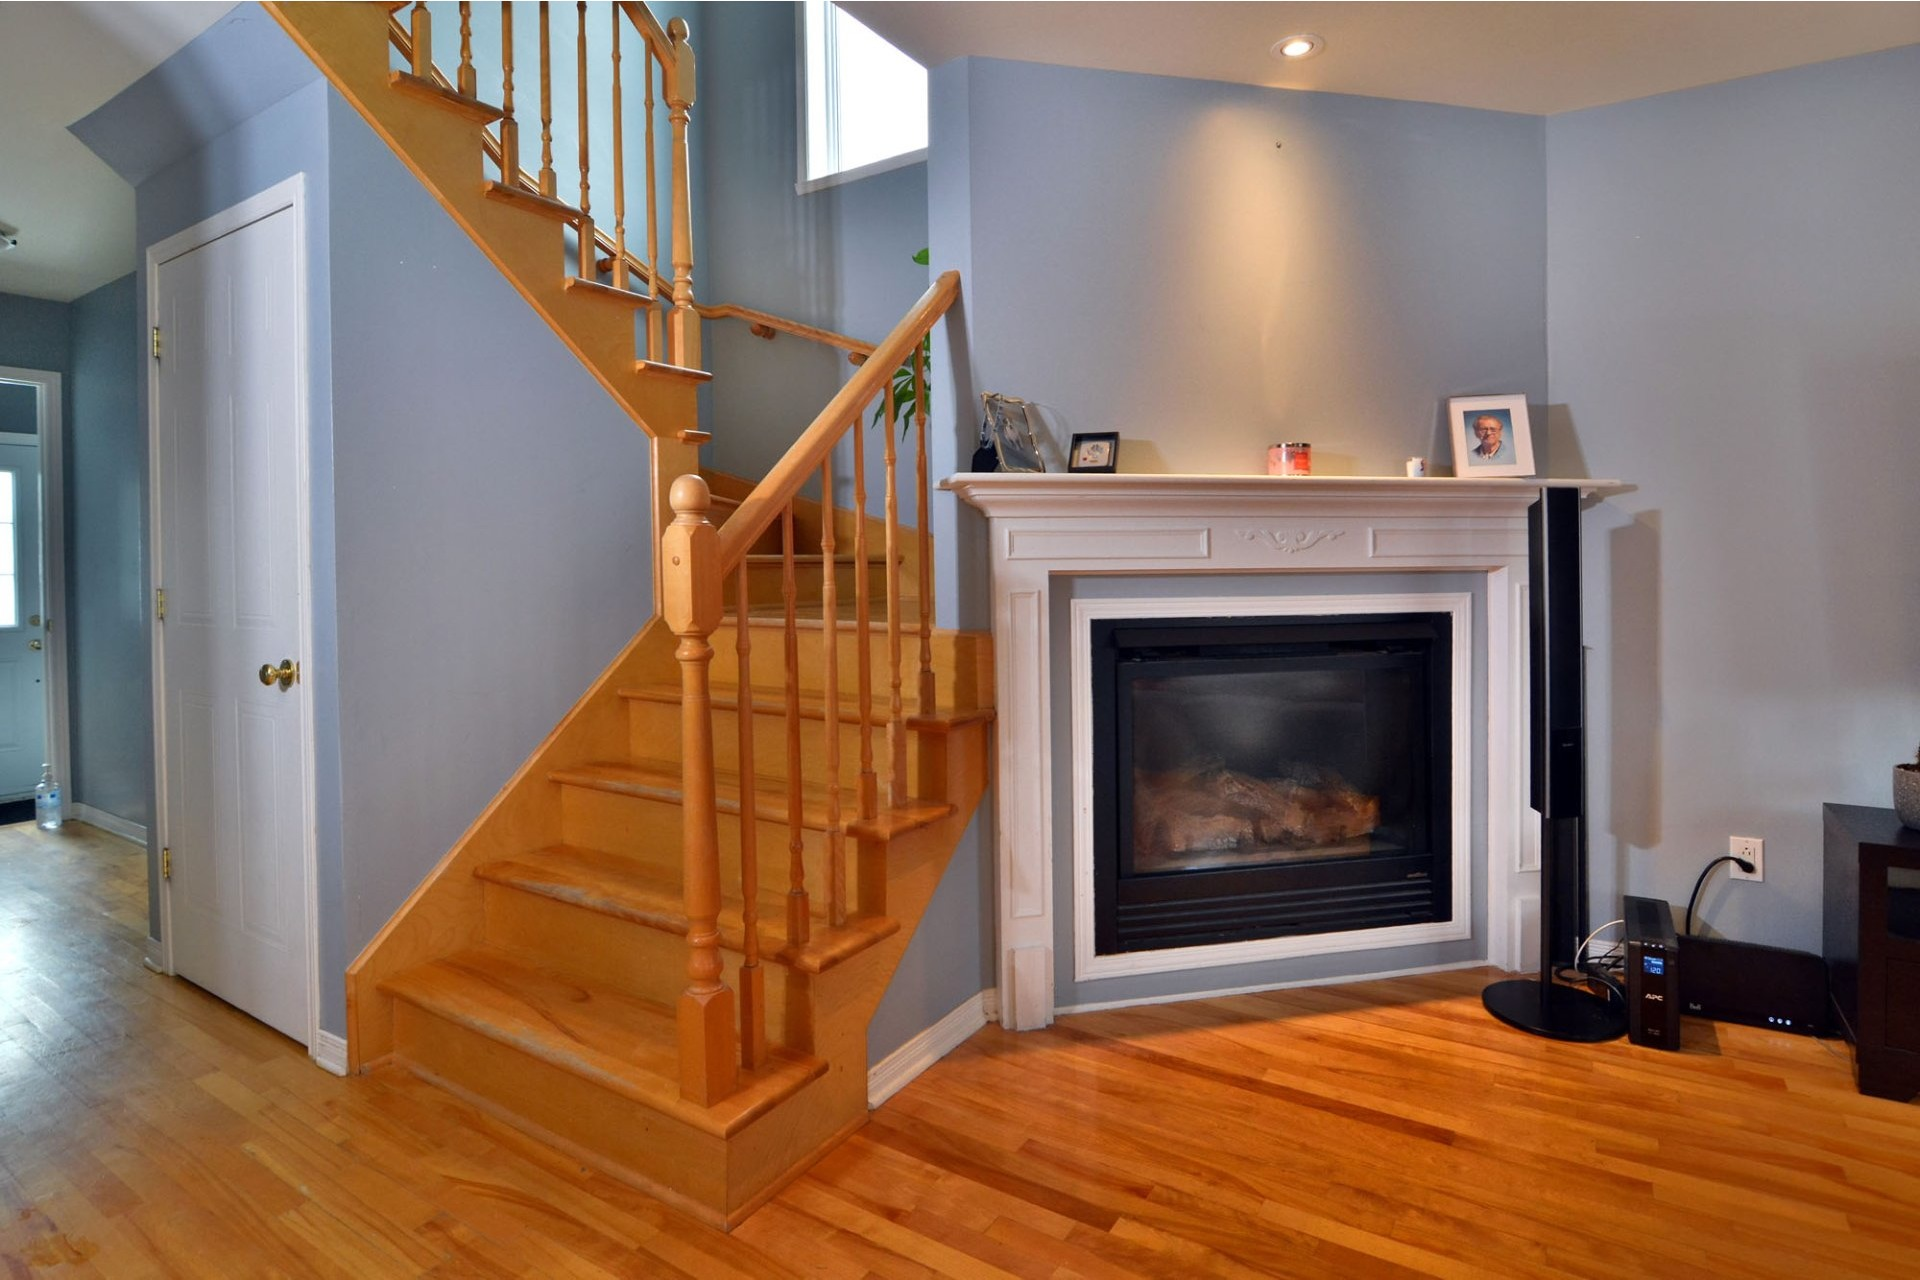 image 2 - House For sale Vaudreuil-Dorion - 13 rooms